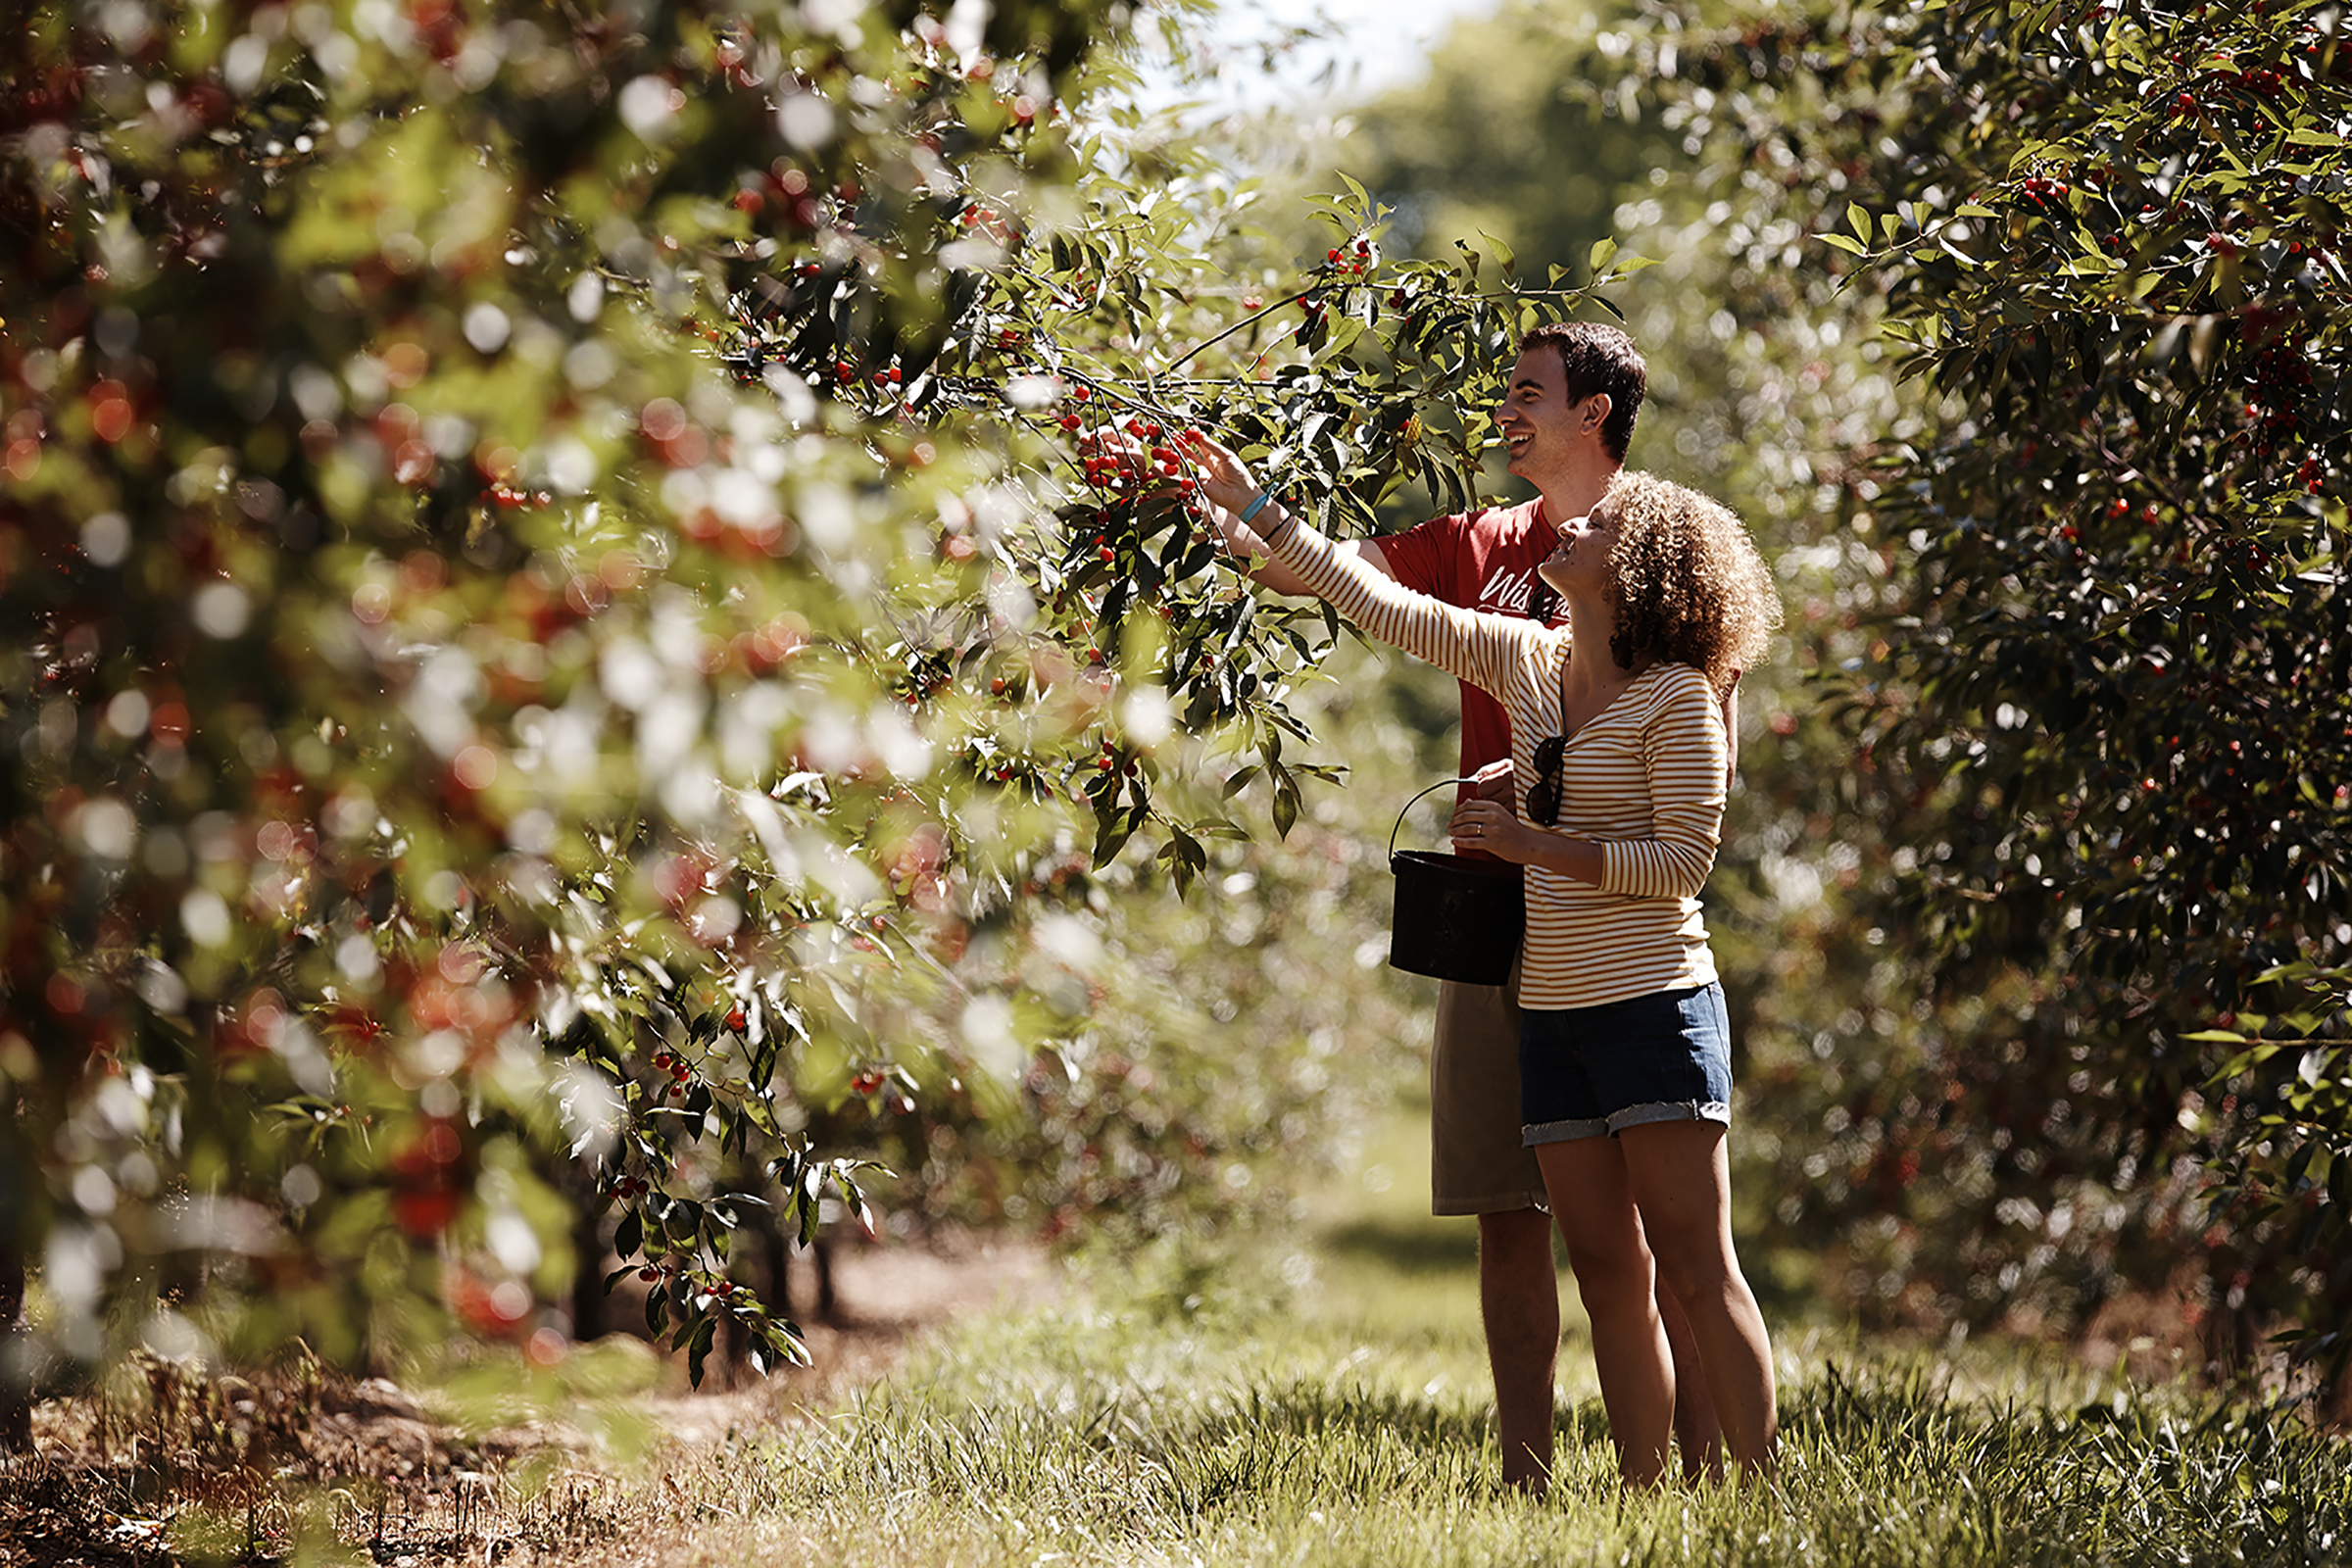 Go Apple or berry picking